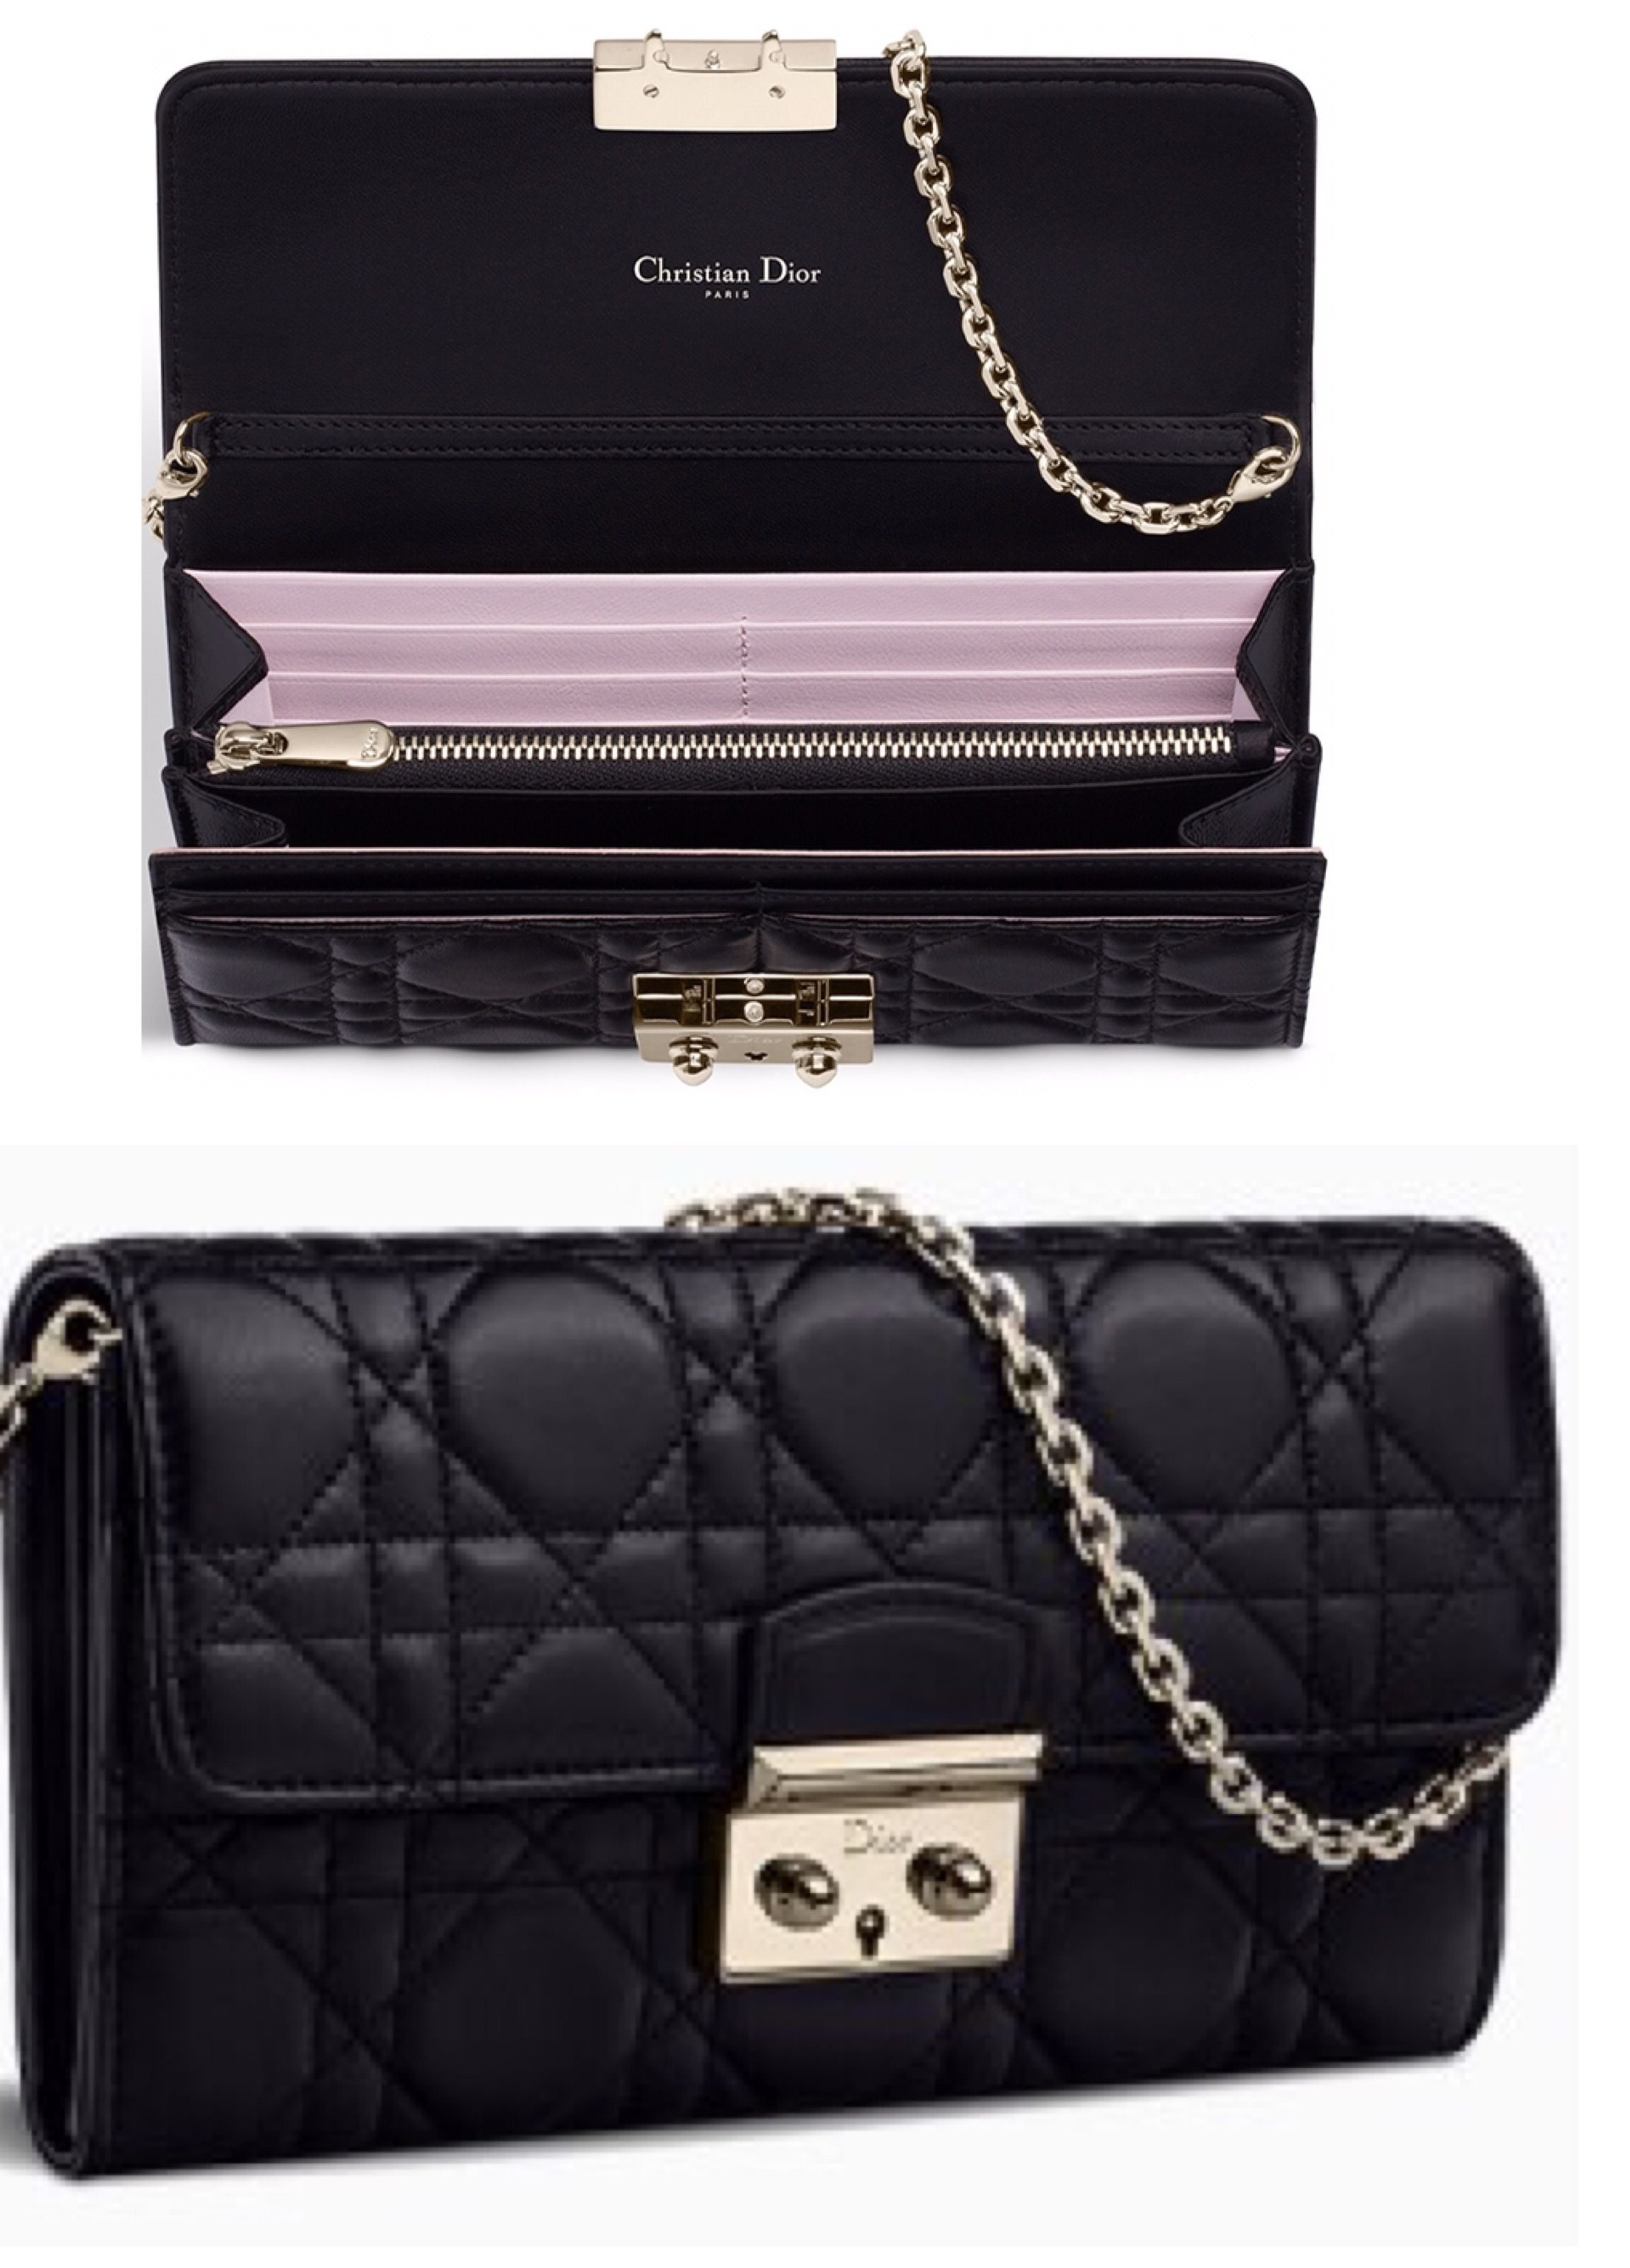 4d3fe05ca6f Miss Dior - Wallet on chain | Bags | Dior, Bags, Shoulder bag